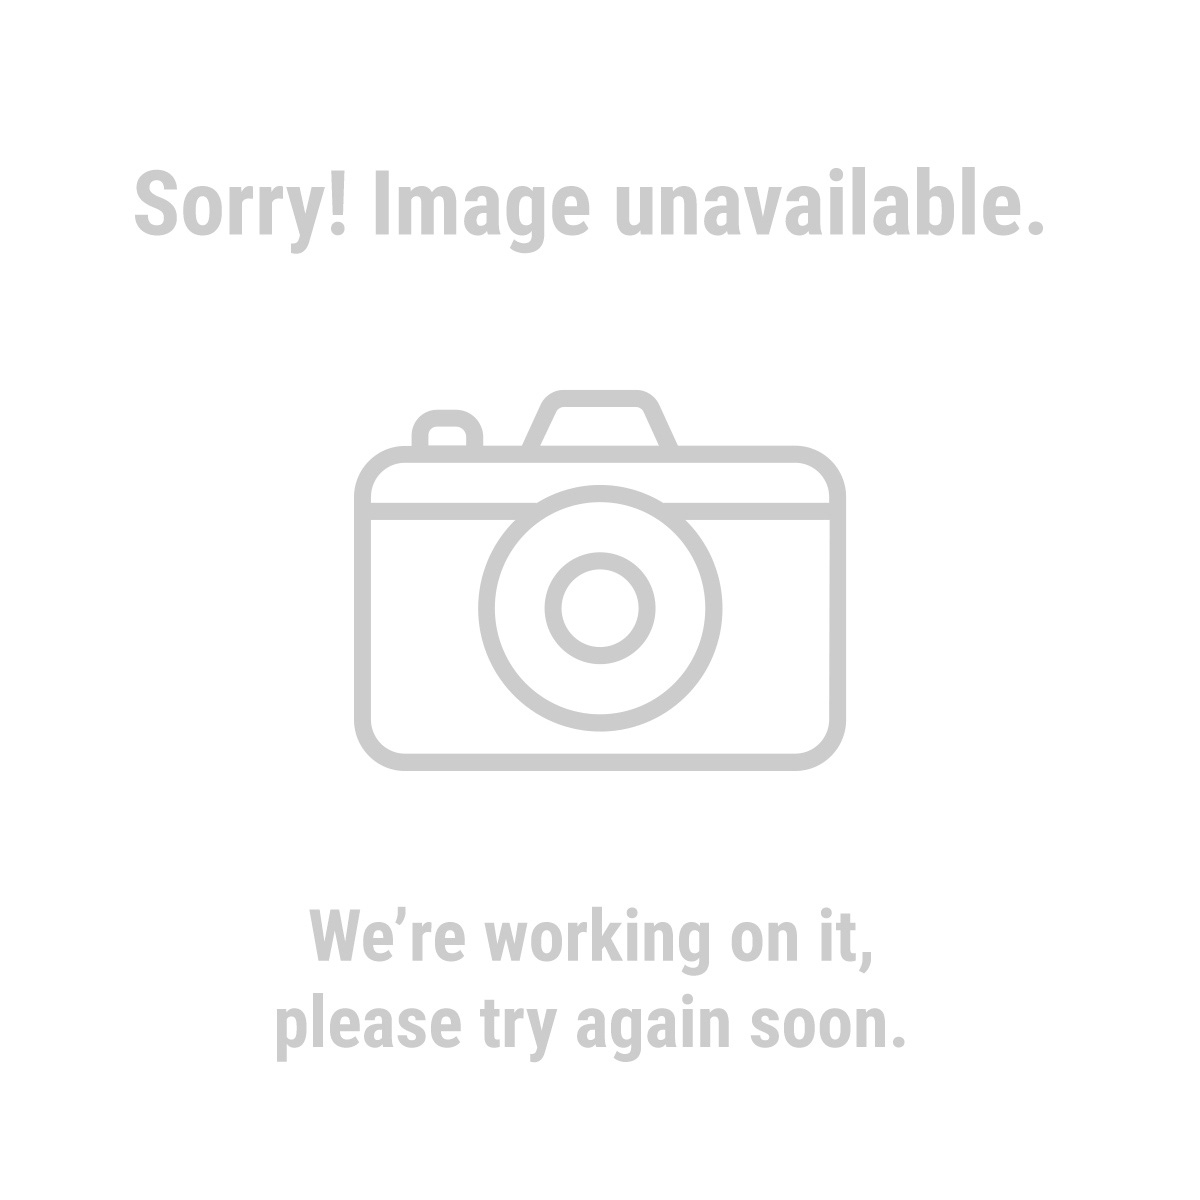 The high quality PVC/polyester material of this rain suit keeps you dry in wet and rainy conditions. Features include adjustable waist straps plus ankle and cuff snaps to provide a comfortable yet snug fit/5(30).